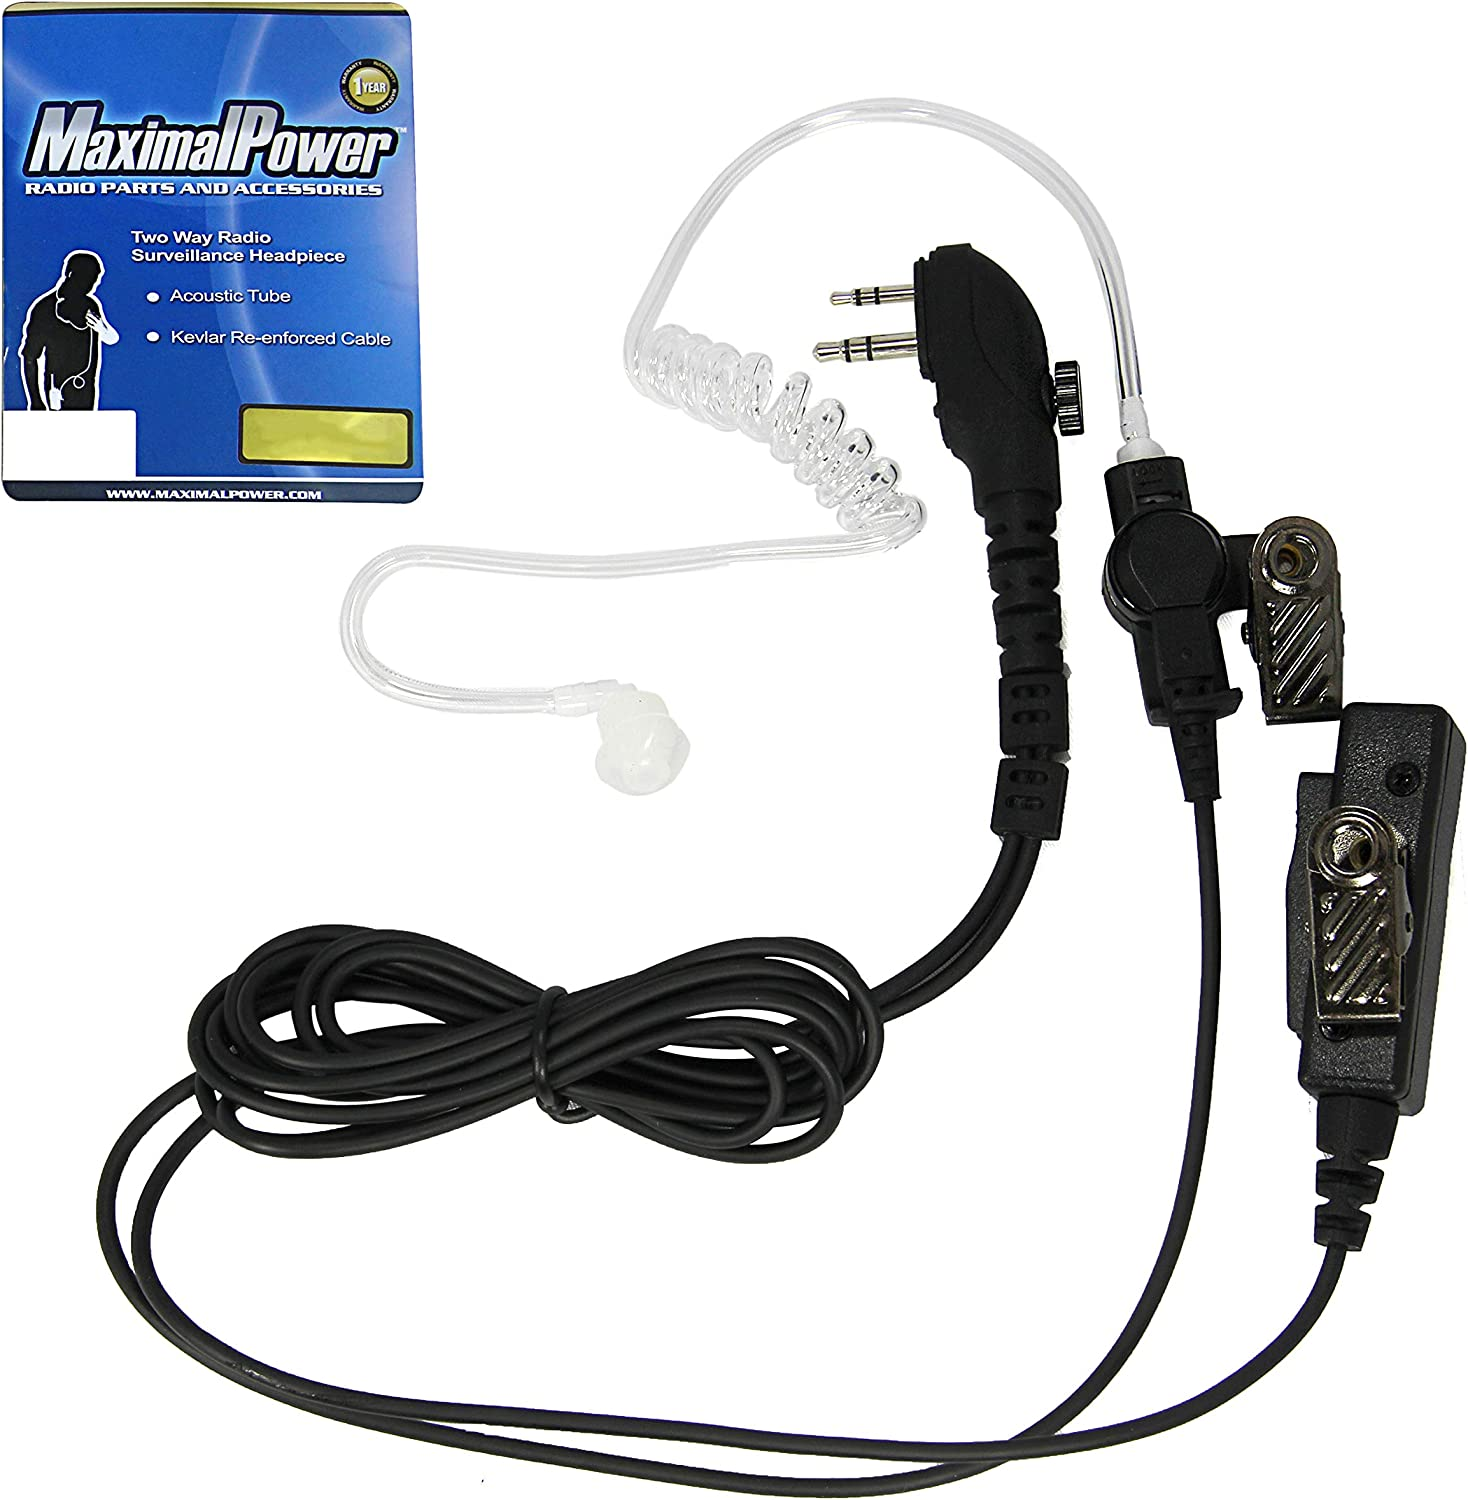 5x SURVEILLANCE EARPIECE ACOUSTIC TUBES WITH EARBUDS AND CONNECTORS FOR RADIO